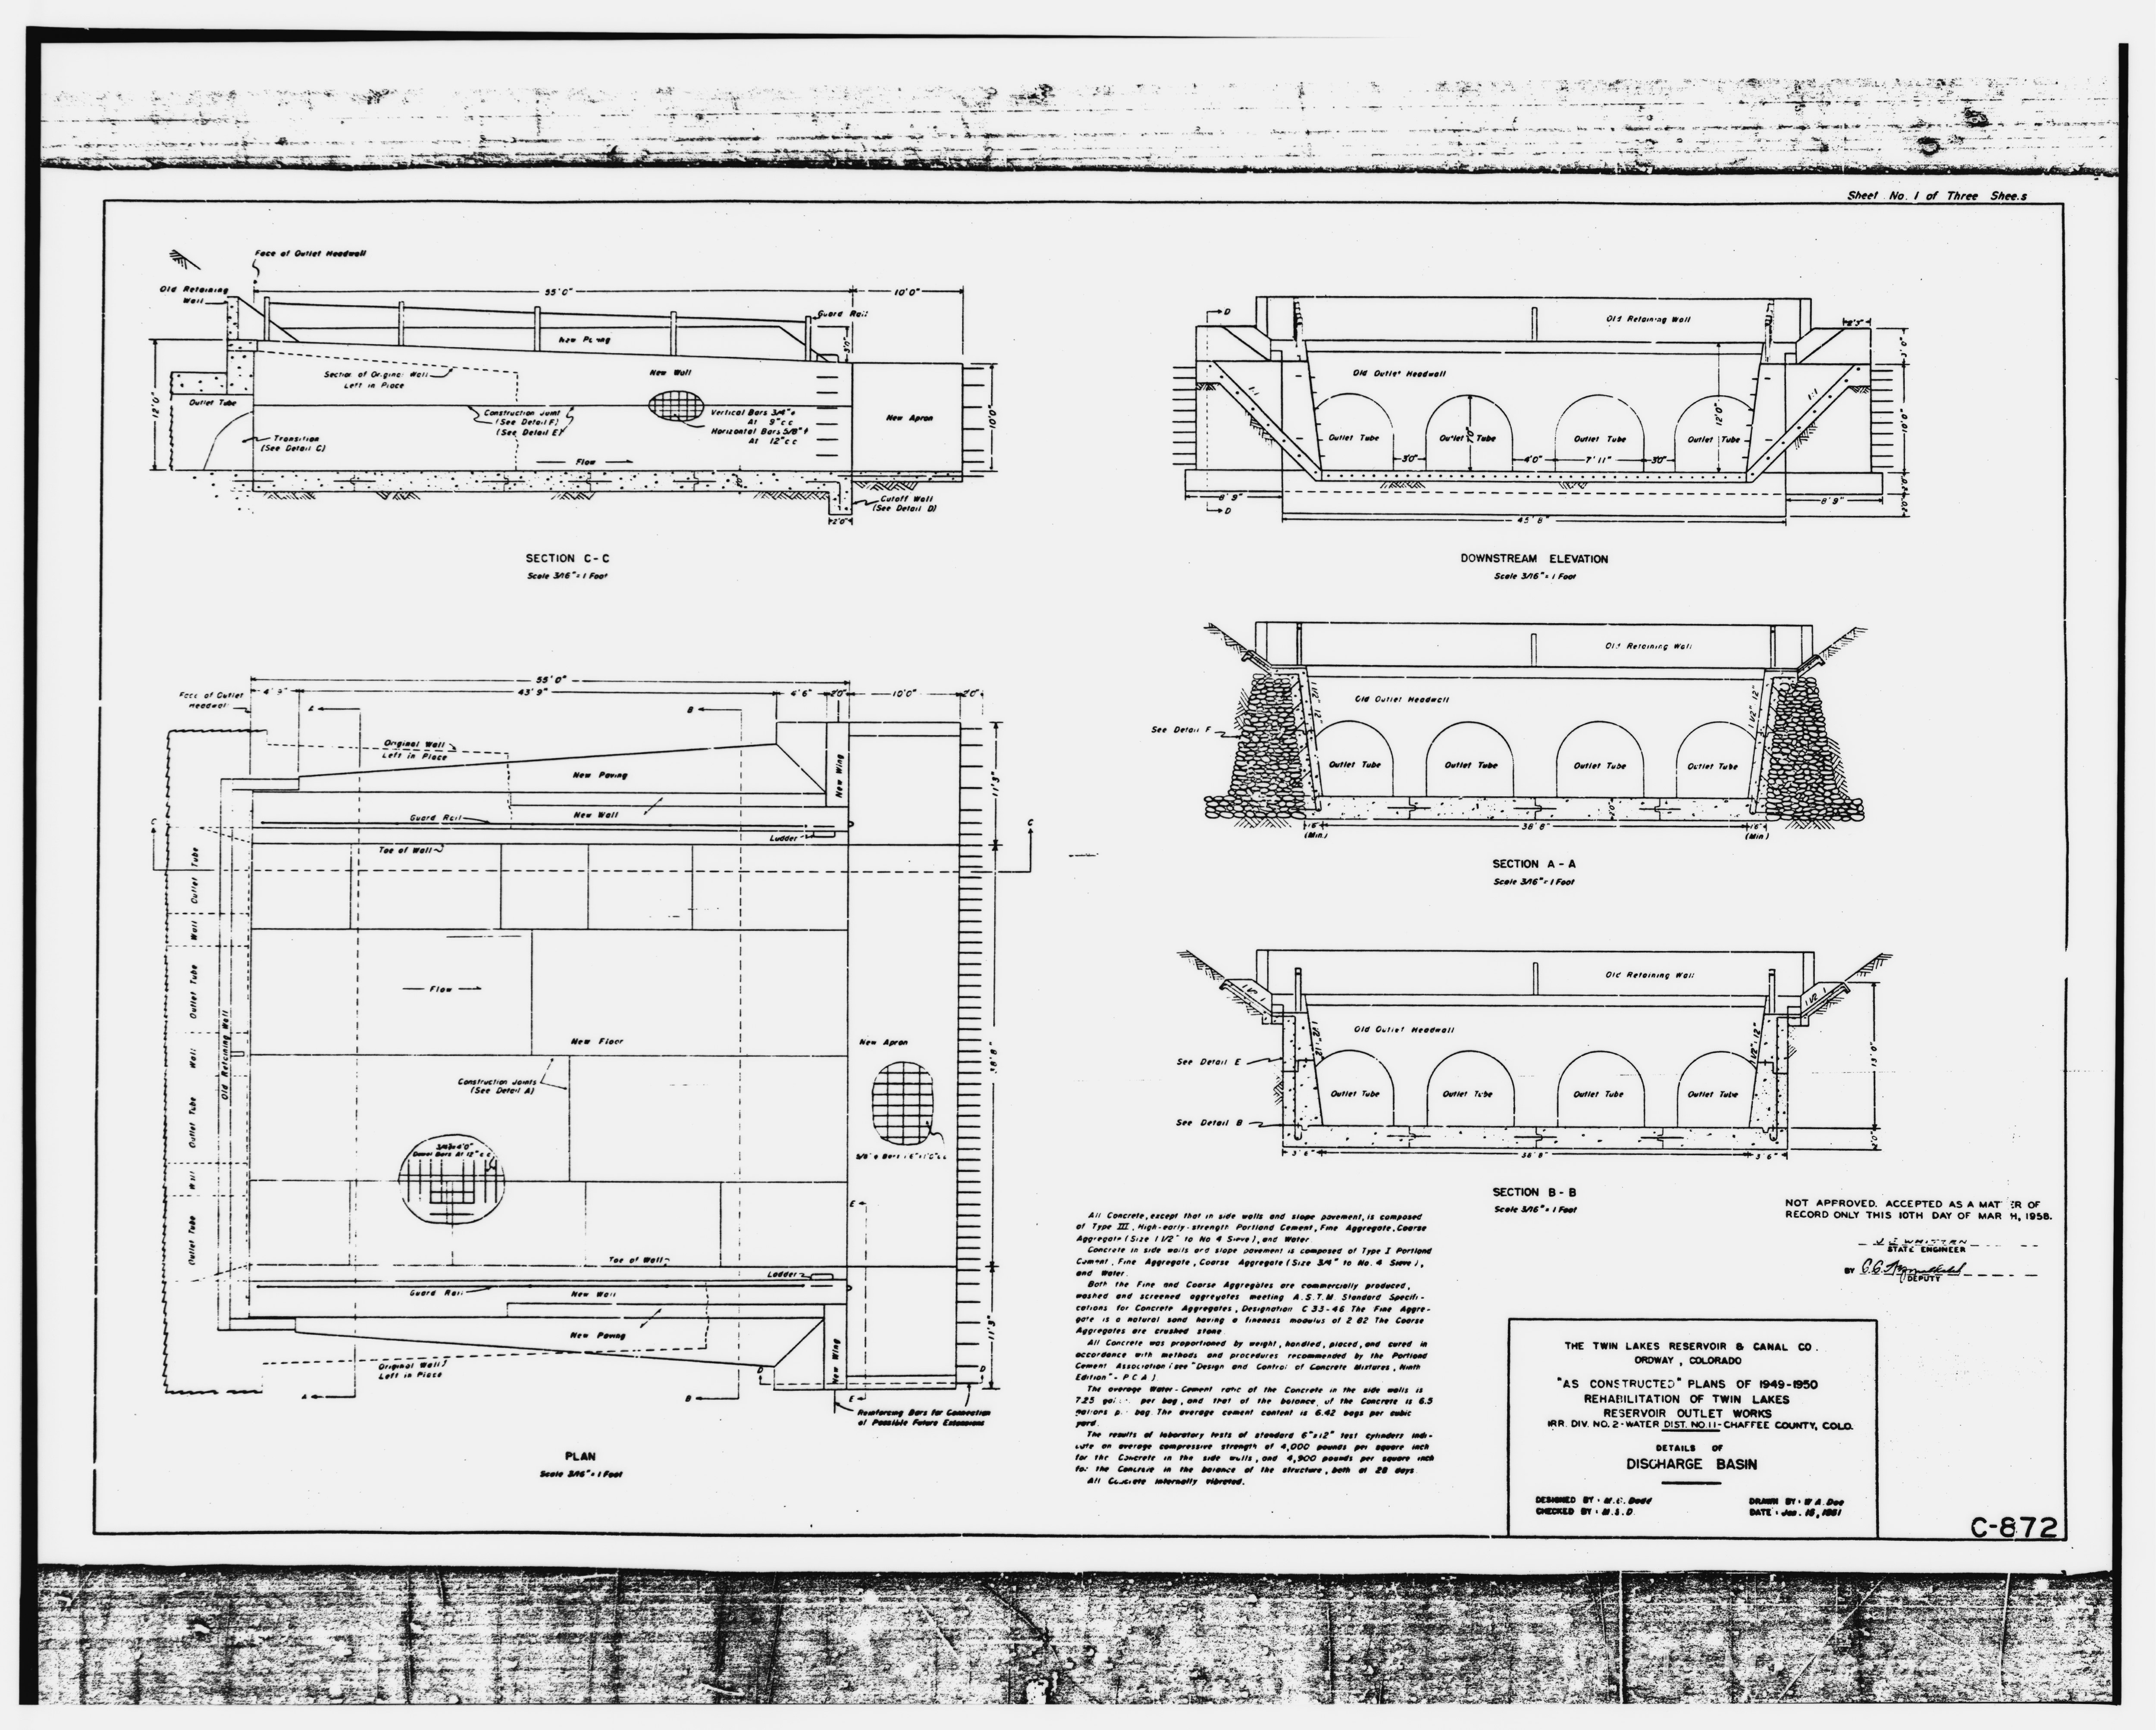 file photographic copy of copy of twin lakes outlet works